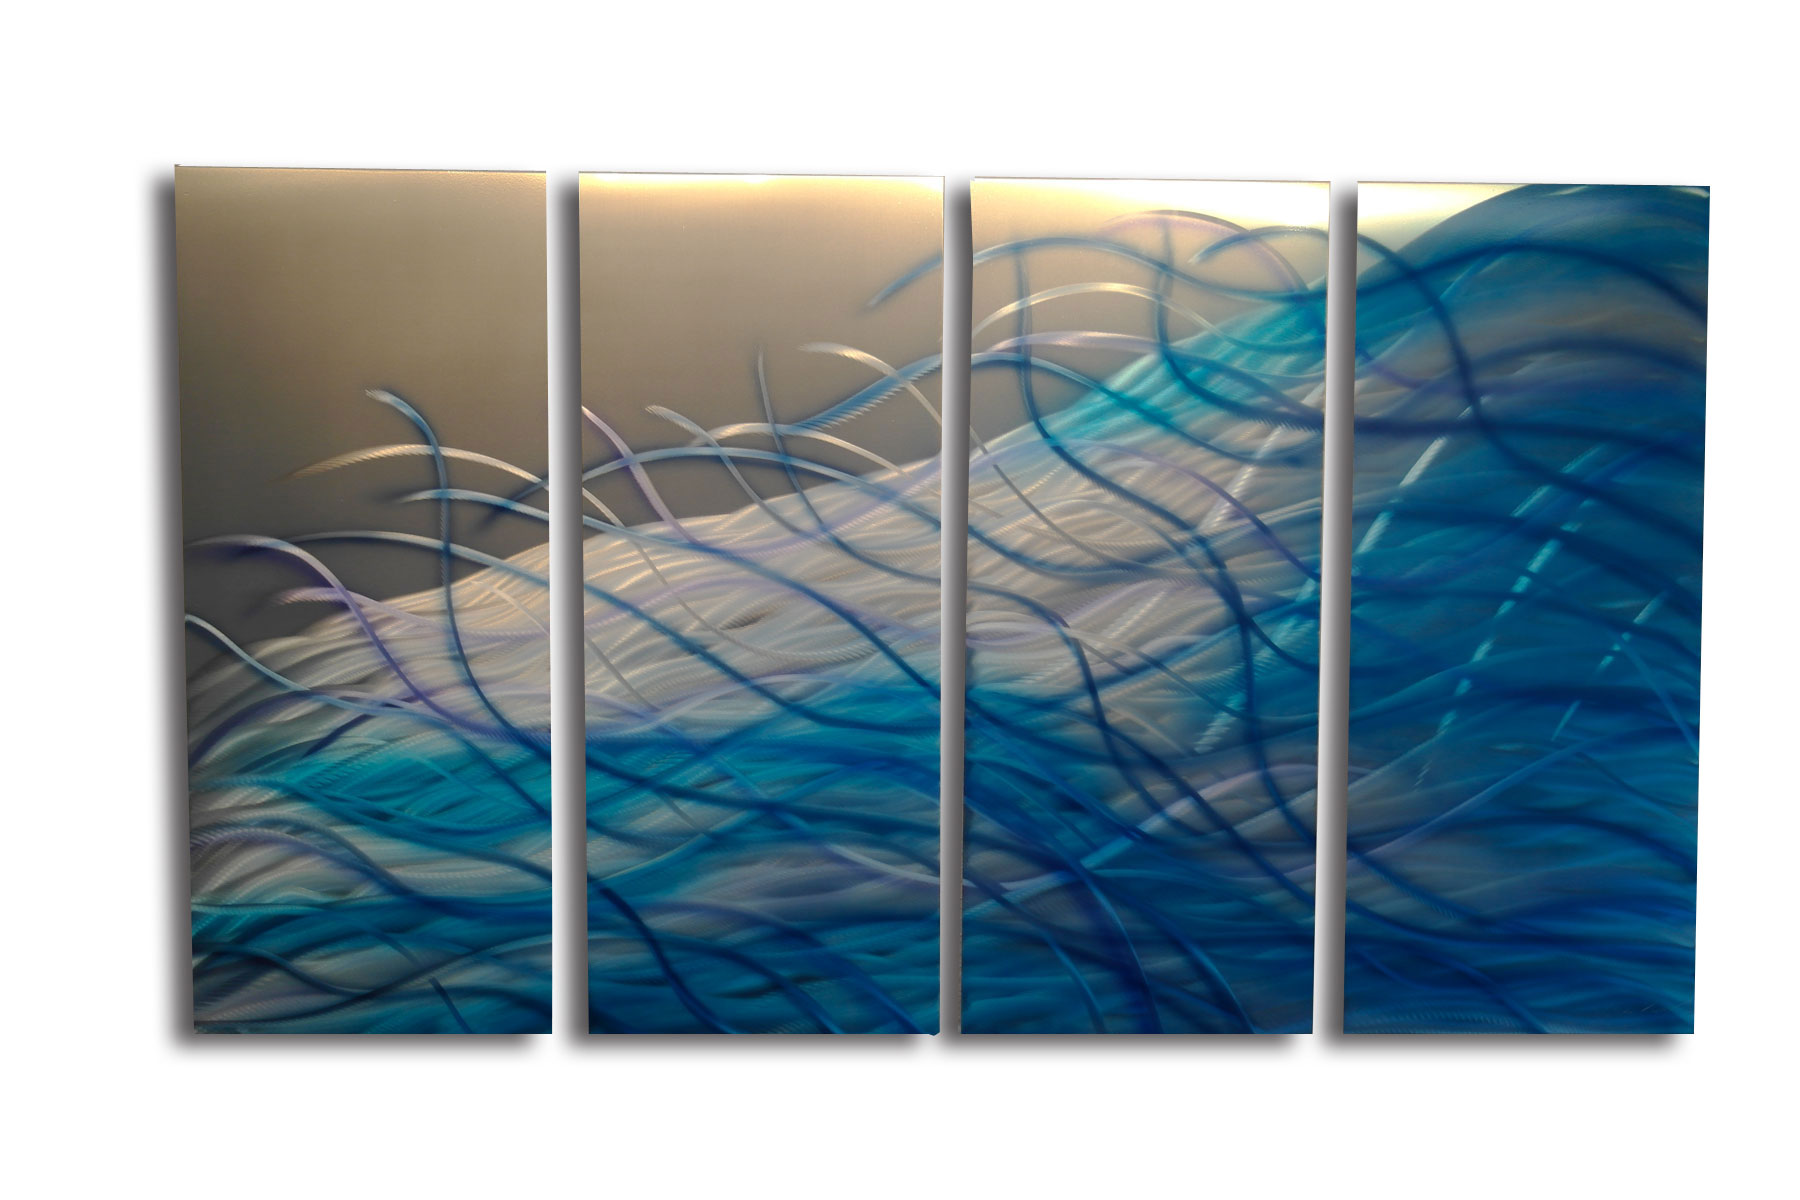 Blue Metal Wall Decor Glamorous Resonance Blue 36  Abstract Metal Wall Art Contemporary Modern Inspiration